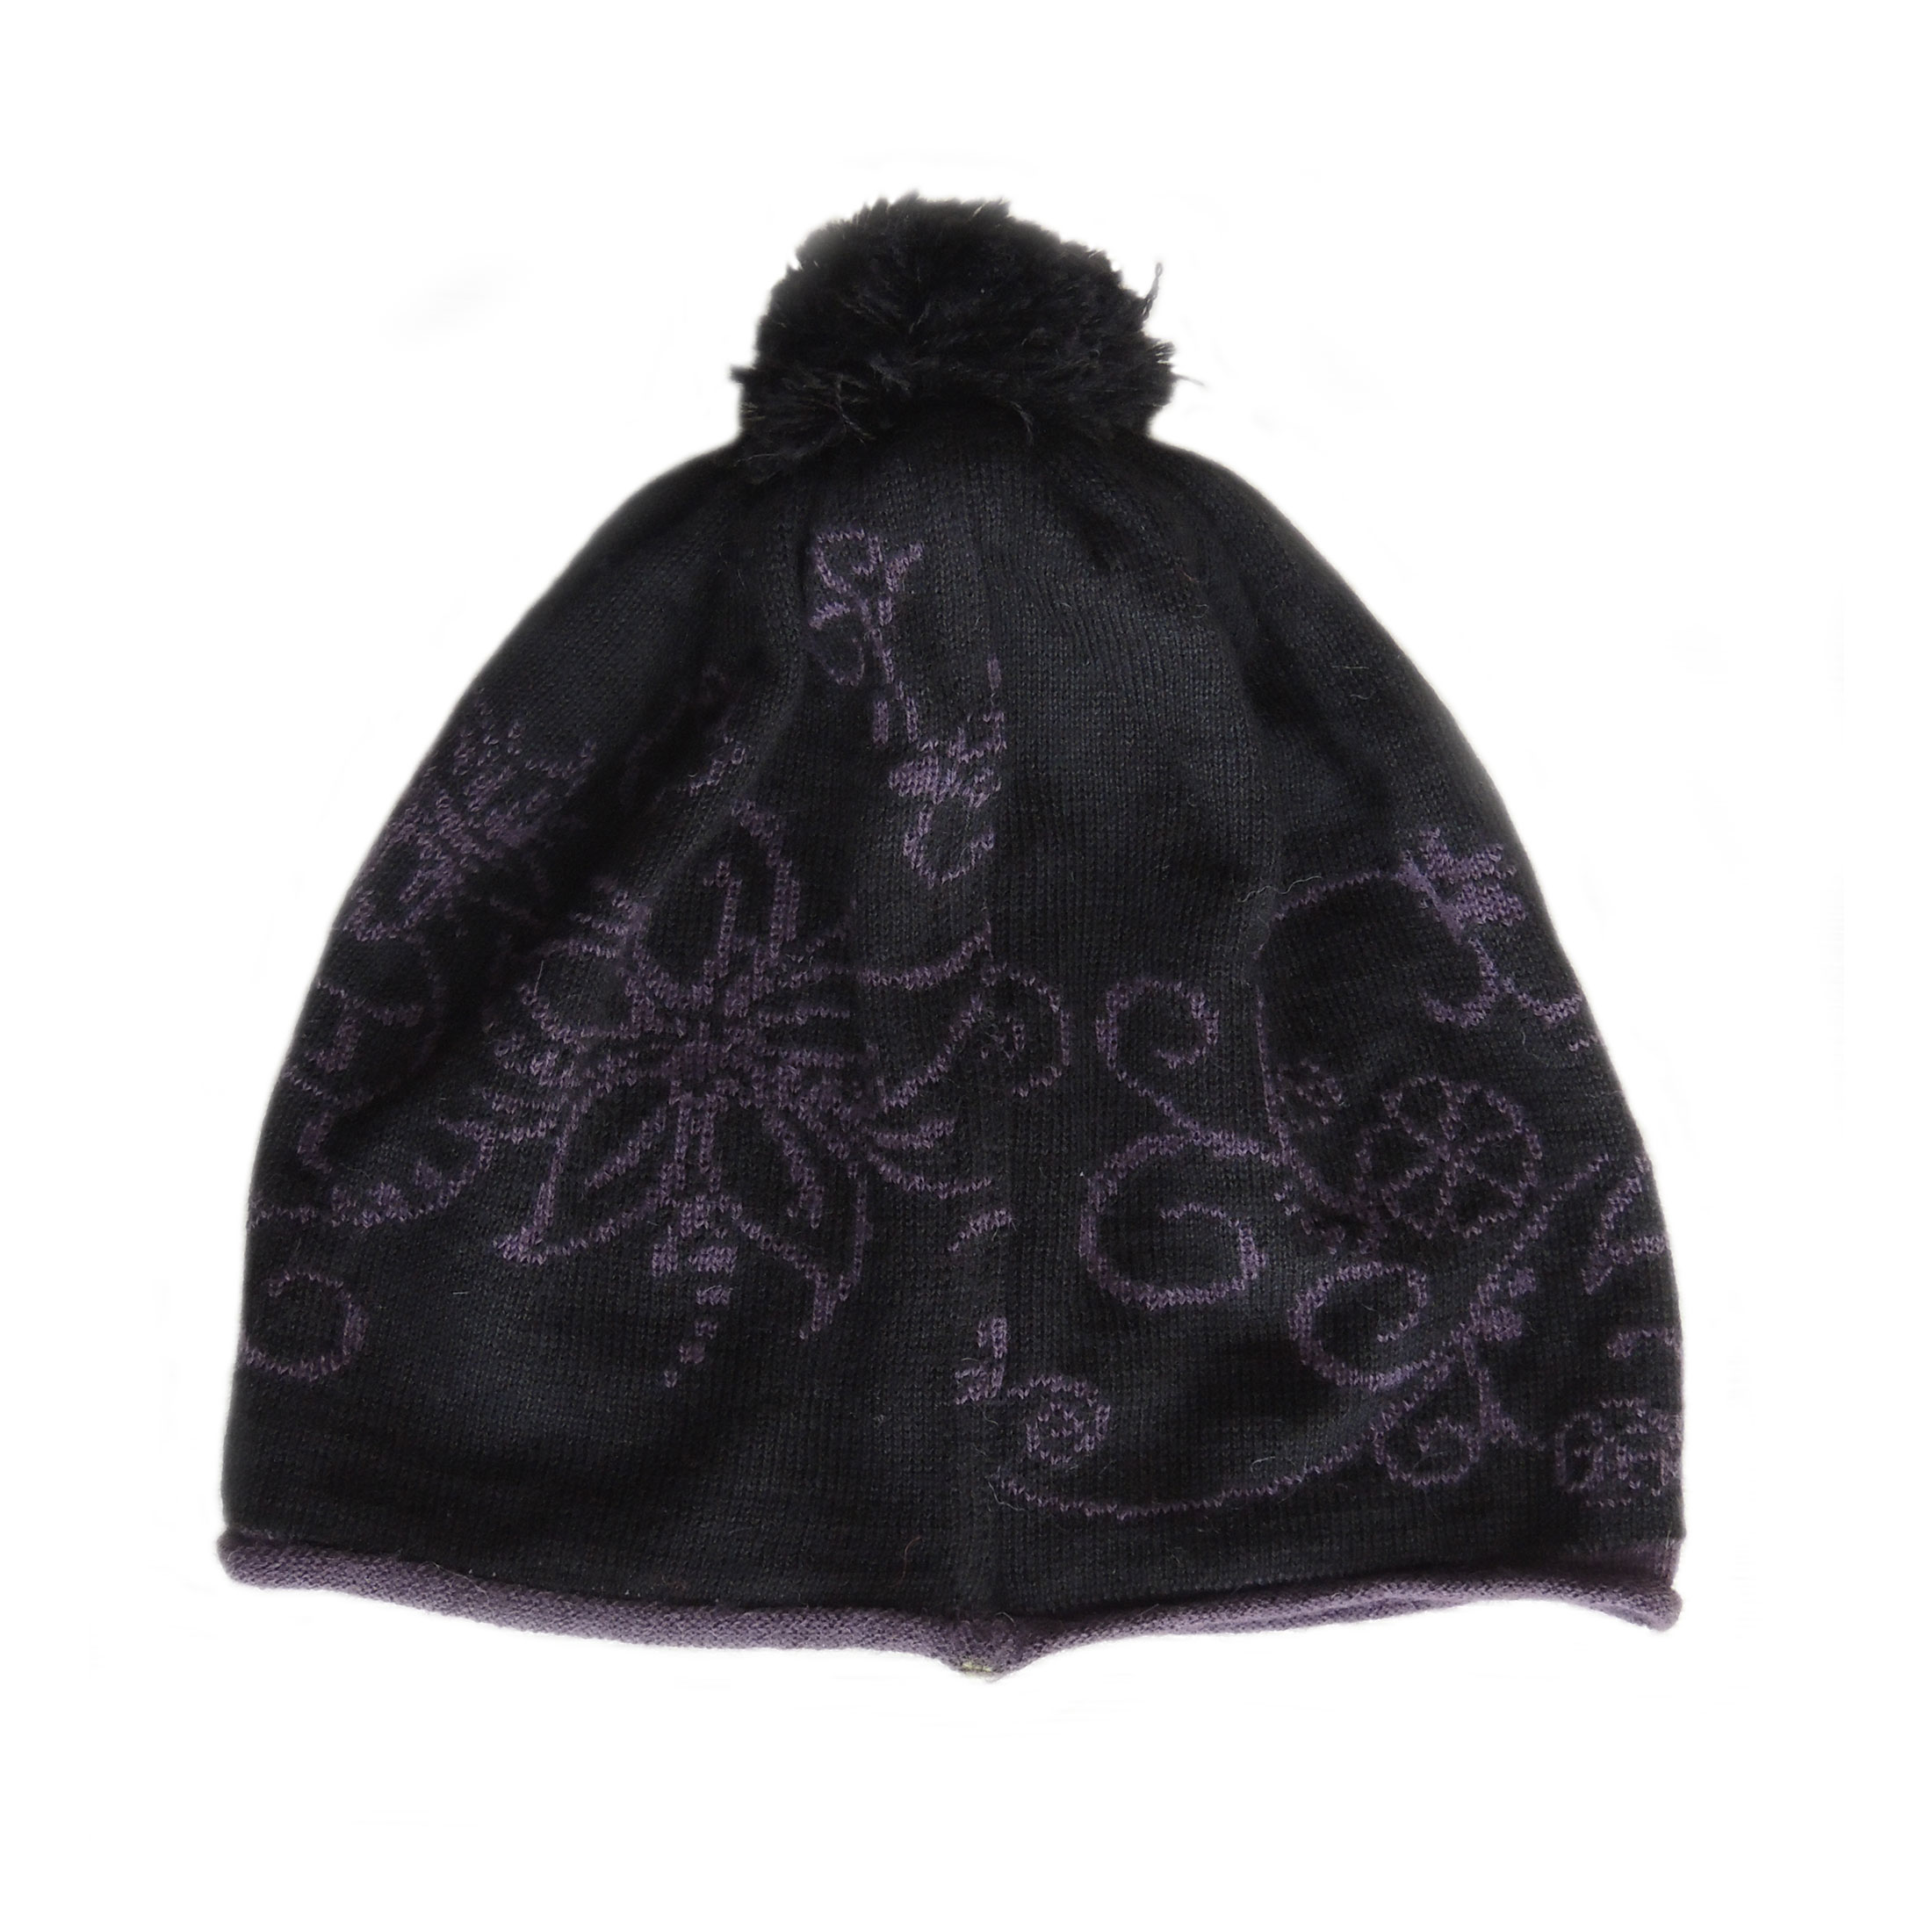 33d6a2ed Women's beanie / hat black - purple with pom pom and embroidered flower  details, alpaca